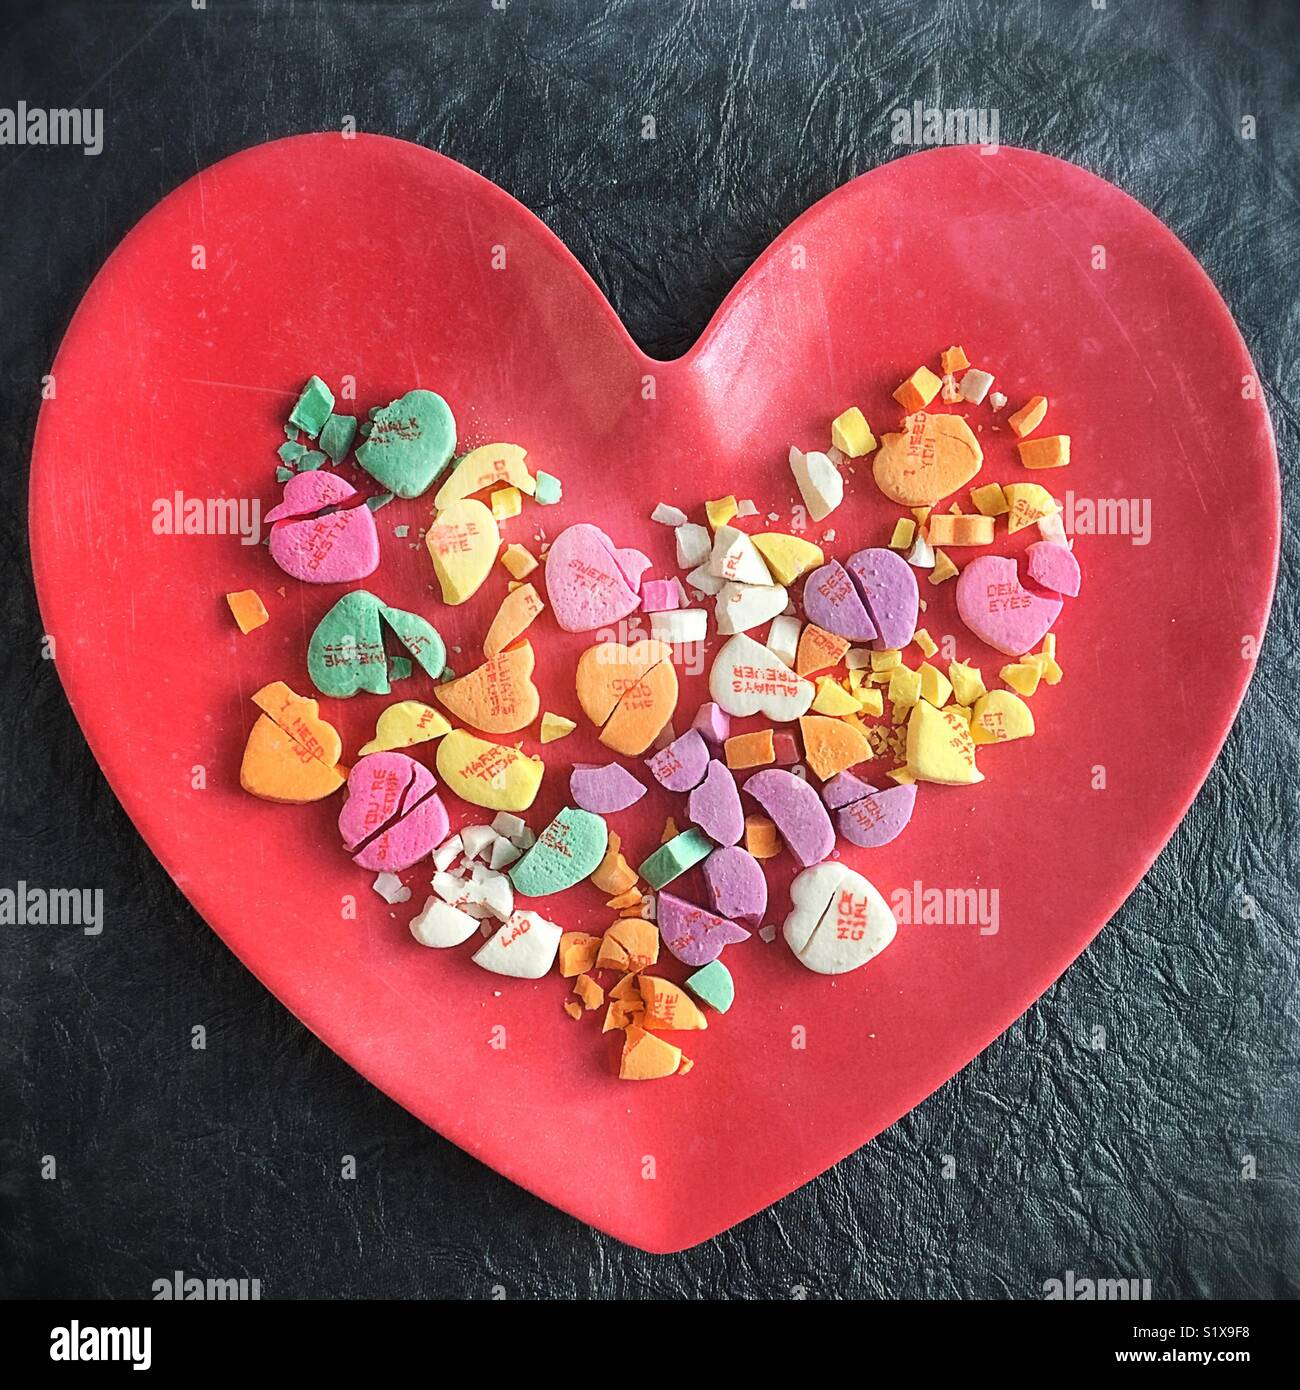 Broken candy hearts on a plate. - Stock Image